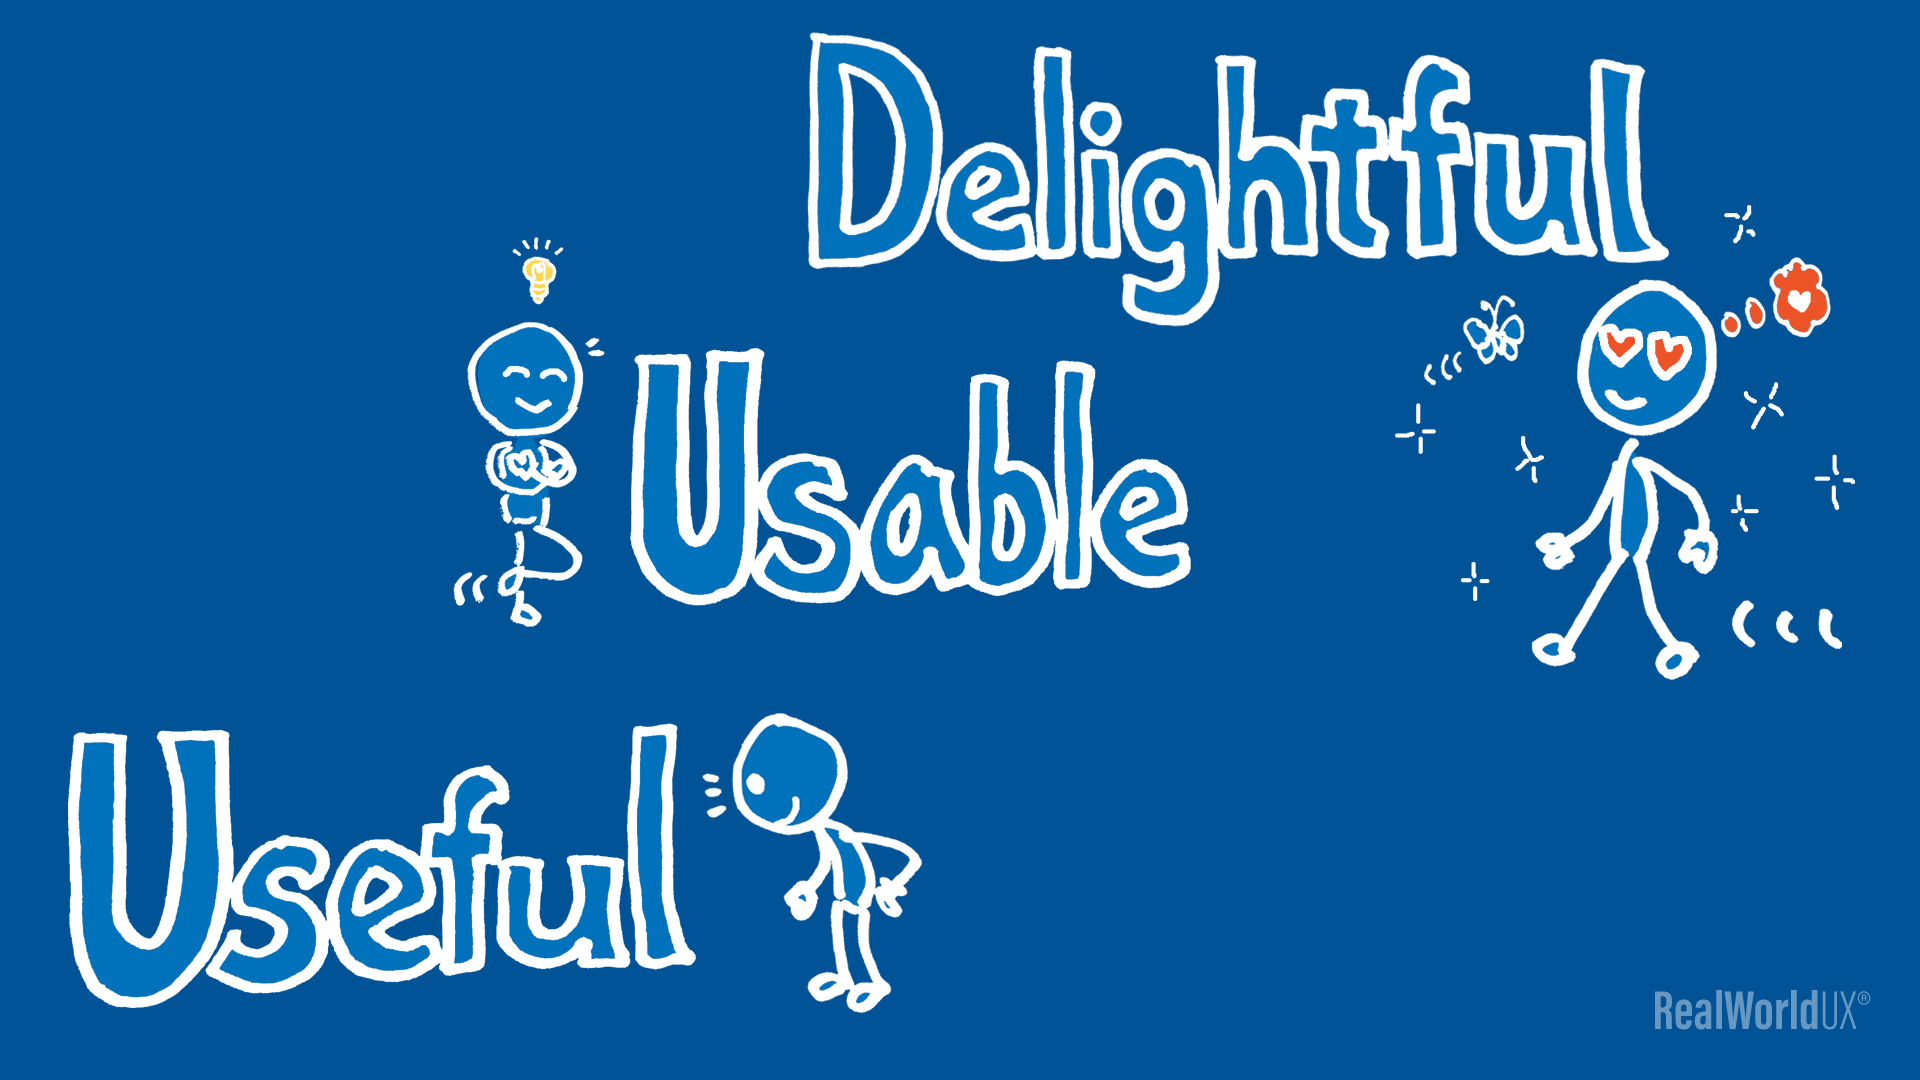 Illustrated title of useful, usable, delightful